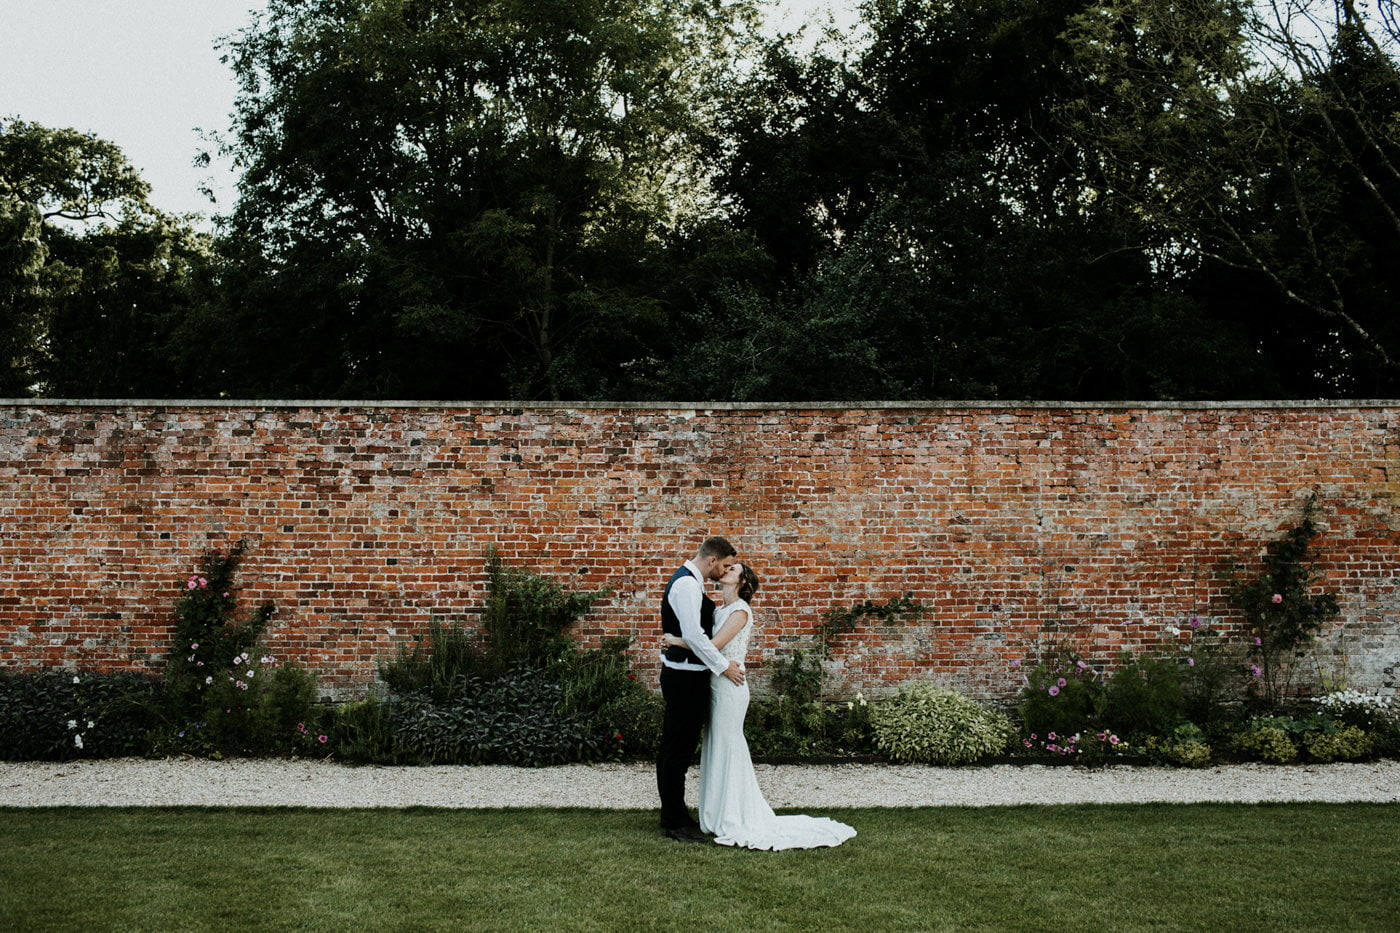 Katy and Adam, Elmhay Park, Somerset 14